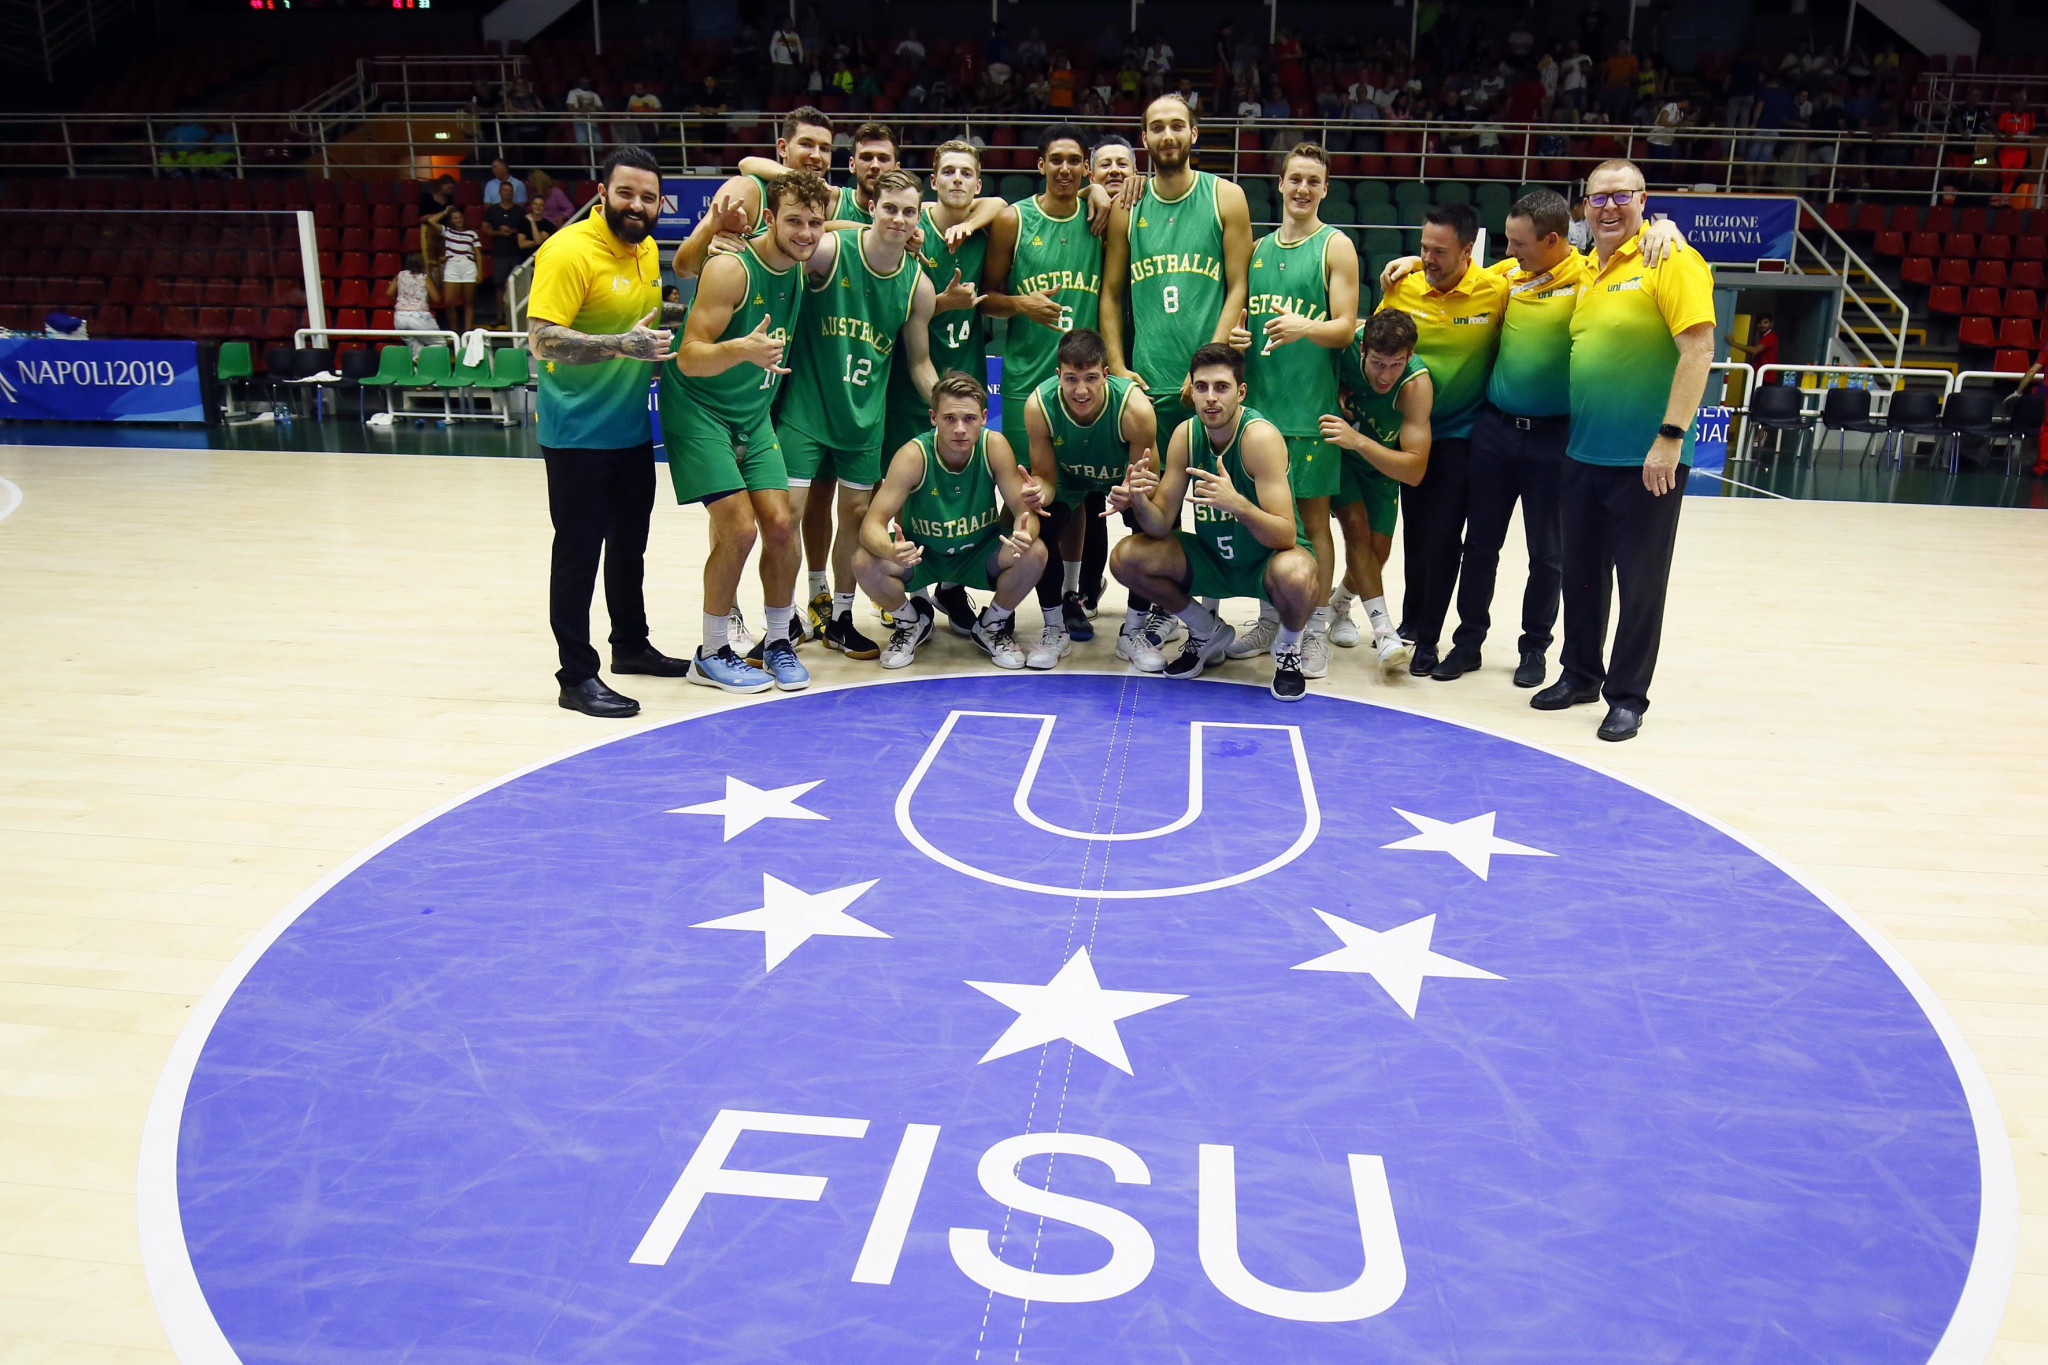 Australia claimed the bronze medal with victory against Israel ©Naples 2019